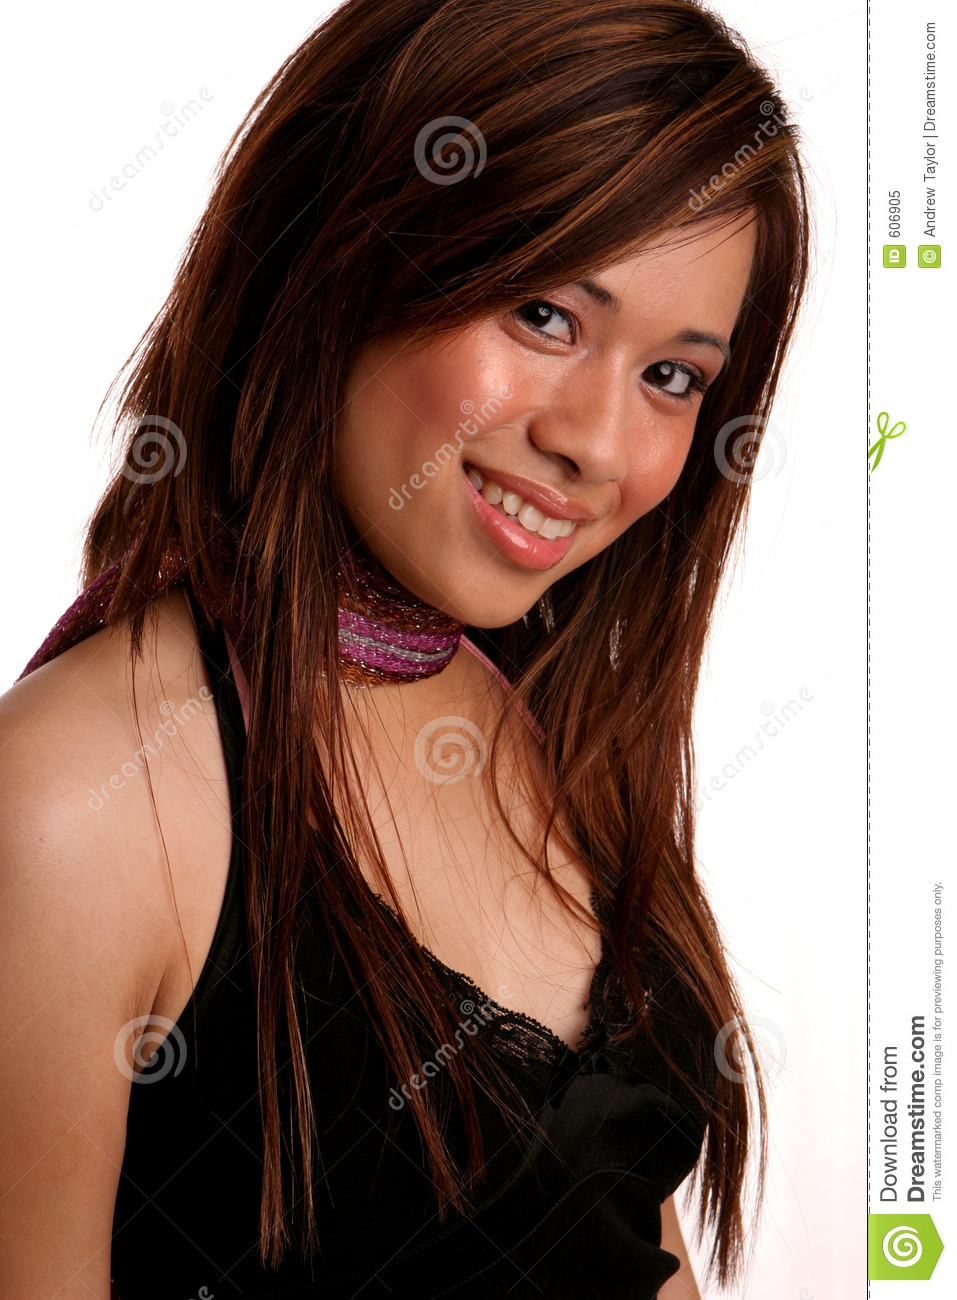 coy asian girl personals My bed or yours is likely the most convenient way to find fuck buddies  coy when meeting new people on mybedoryourscom when you join an adult personals.